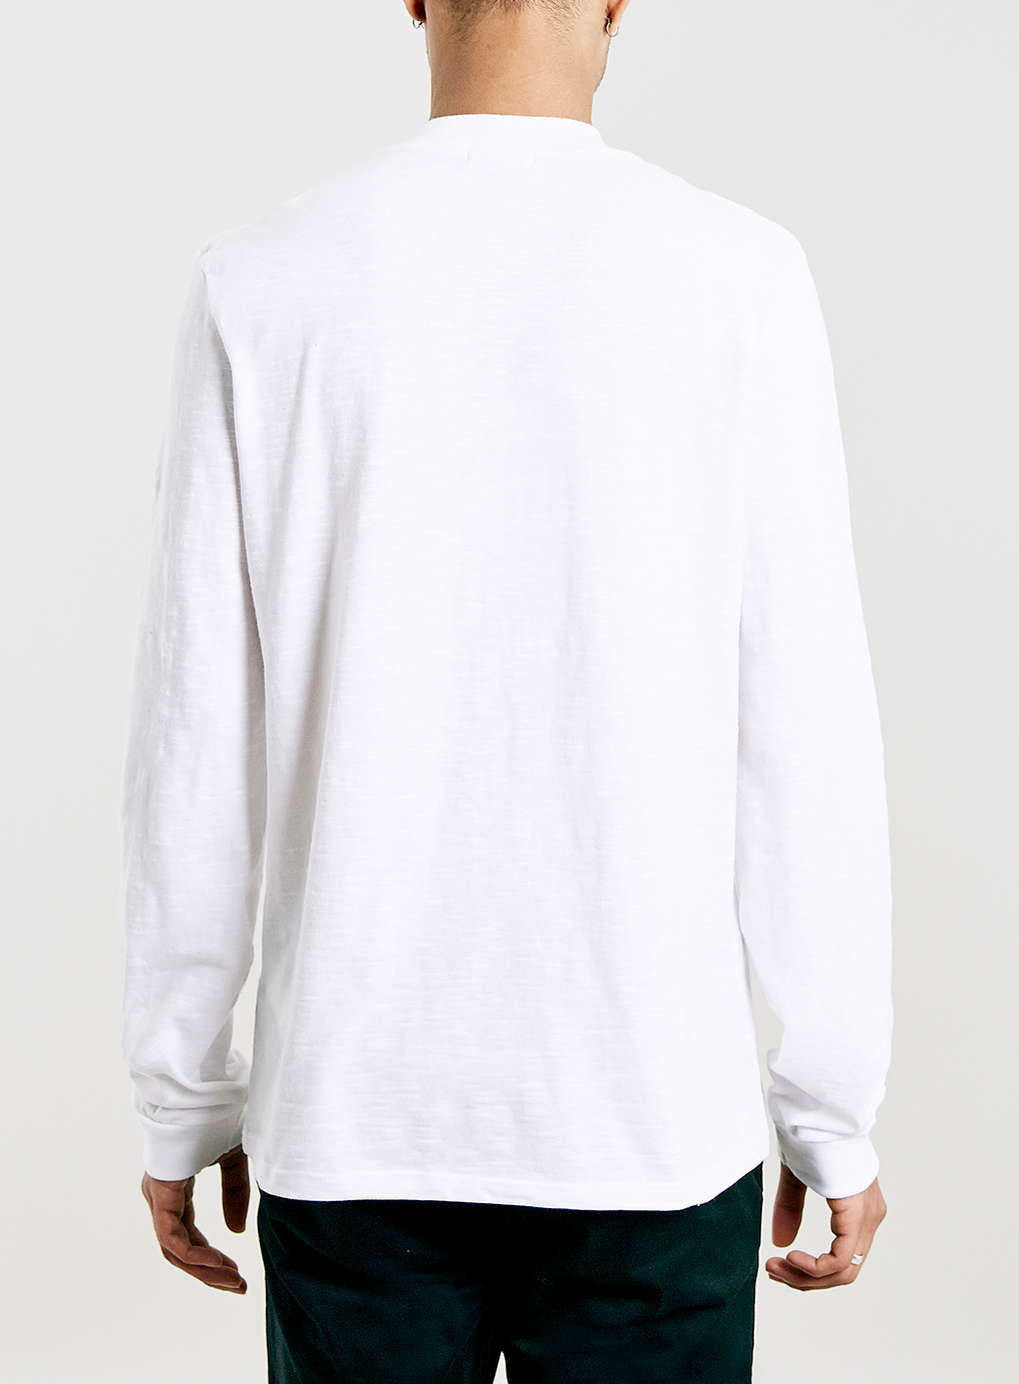 Topman white slubby turtle neck long sleeve t shirt in Mens long sleeve white t shirt